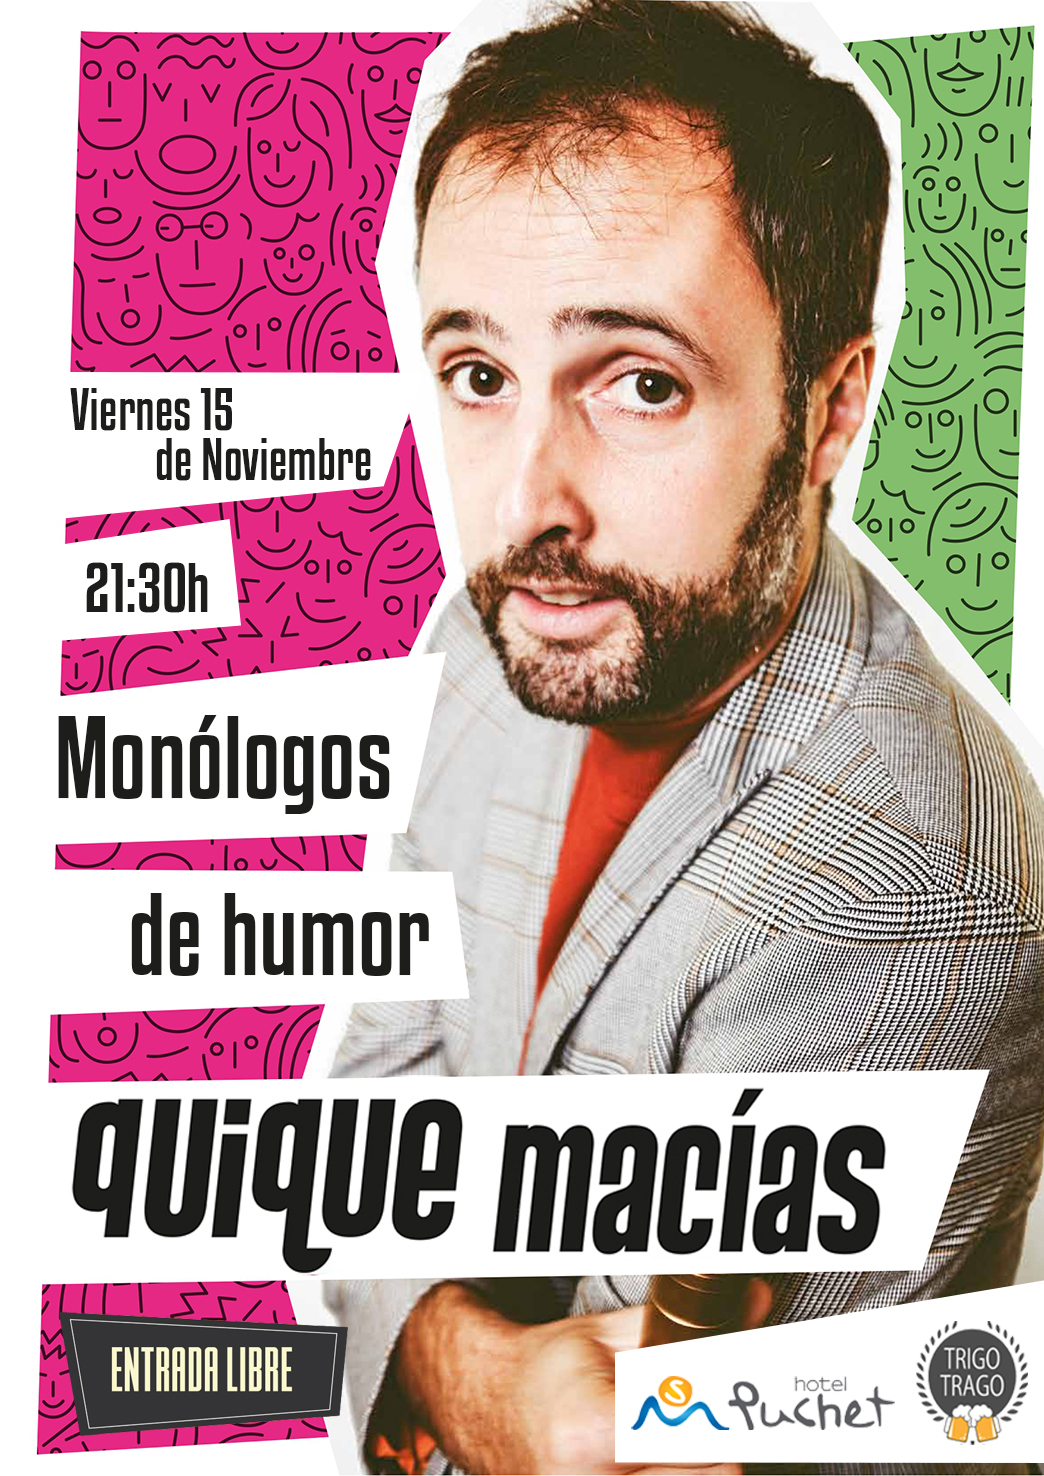 Monologues at Hotel Puchet